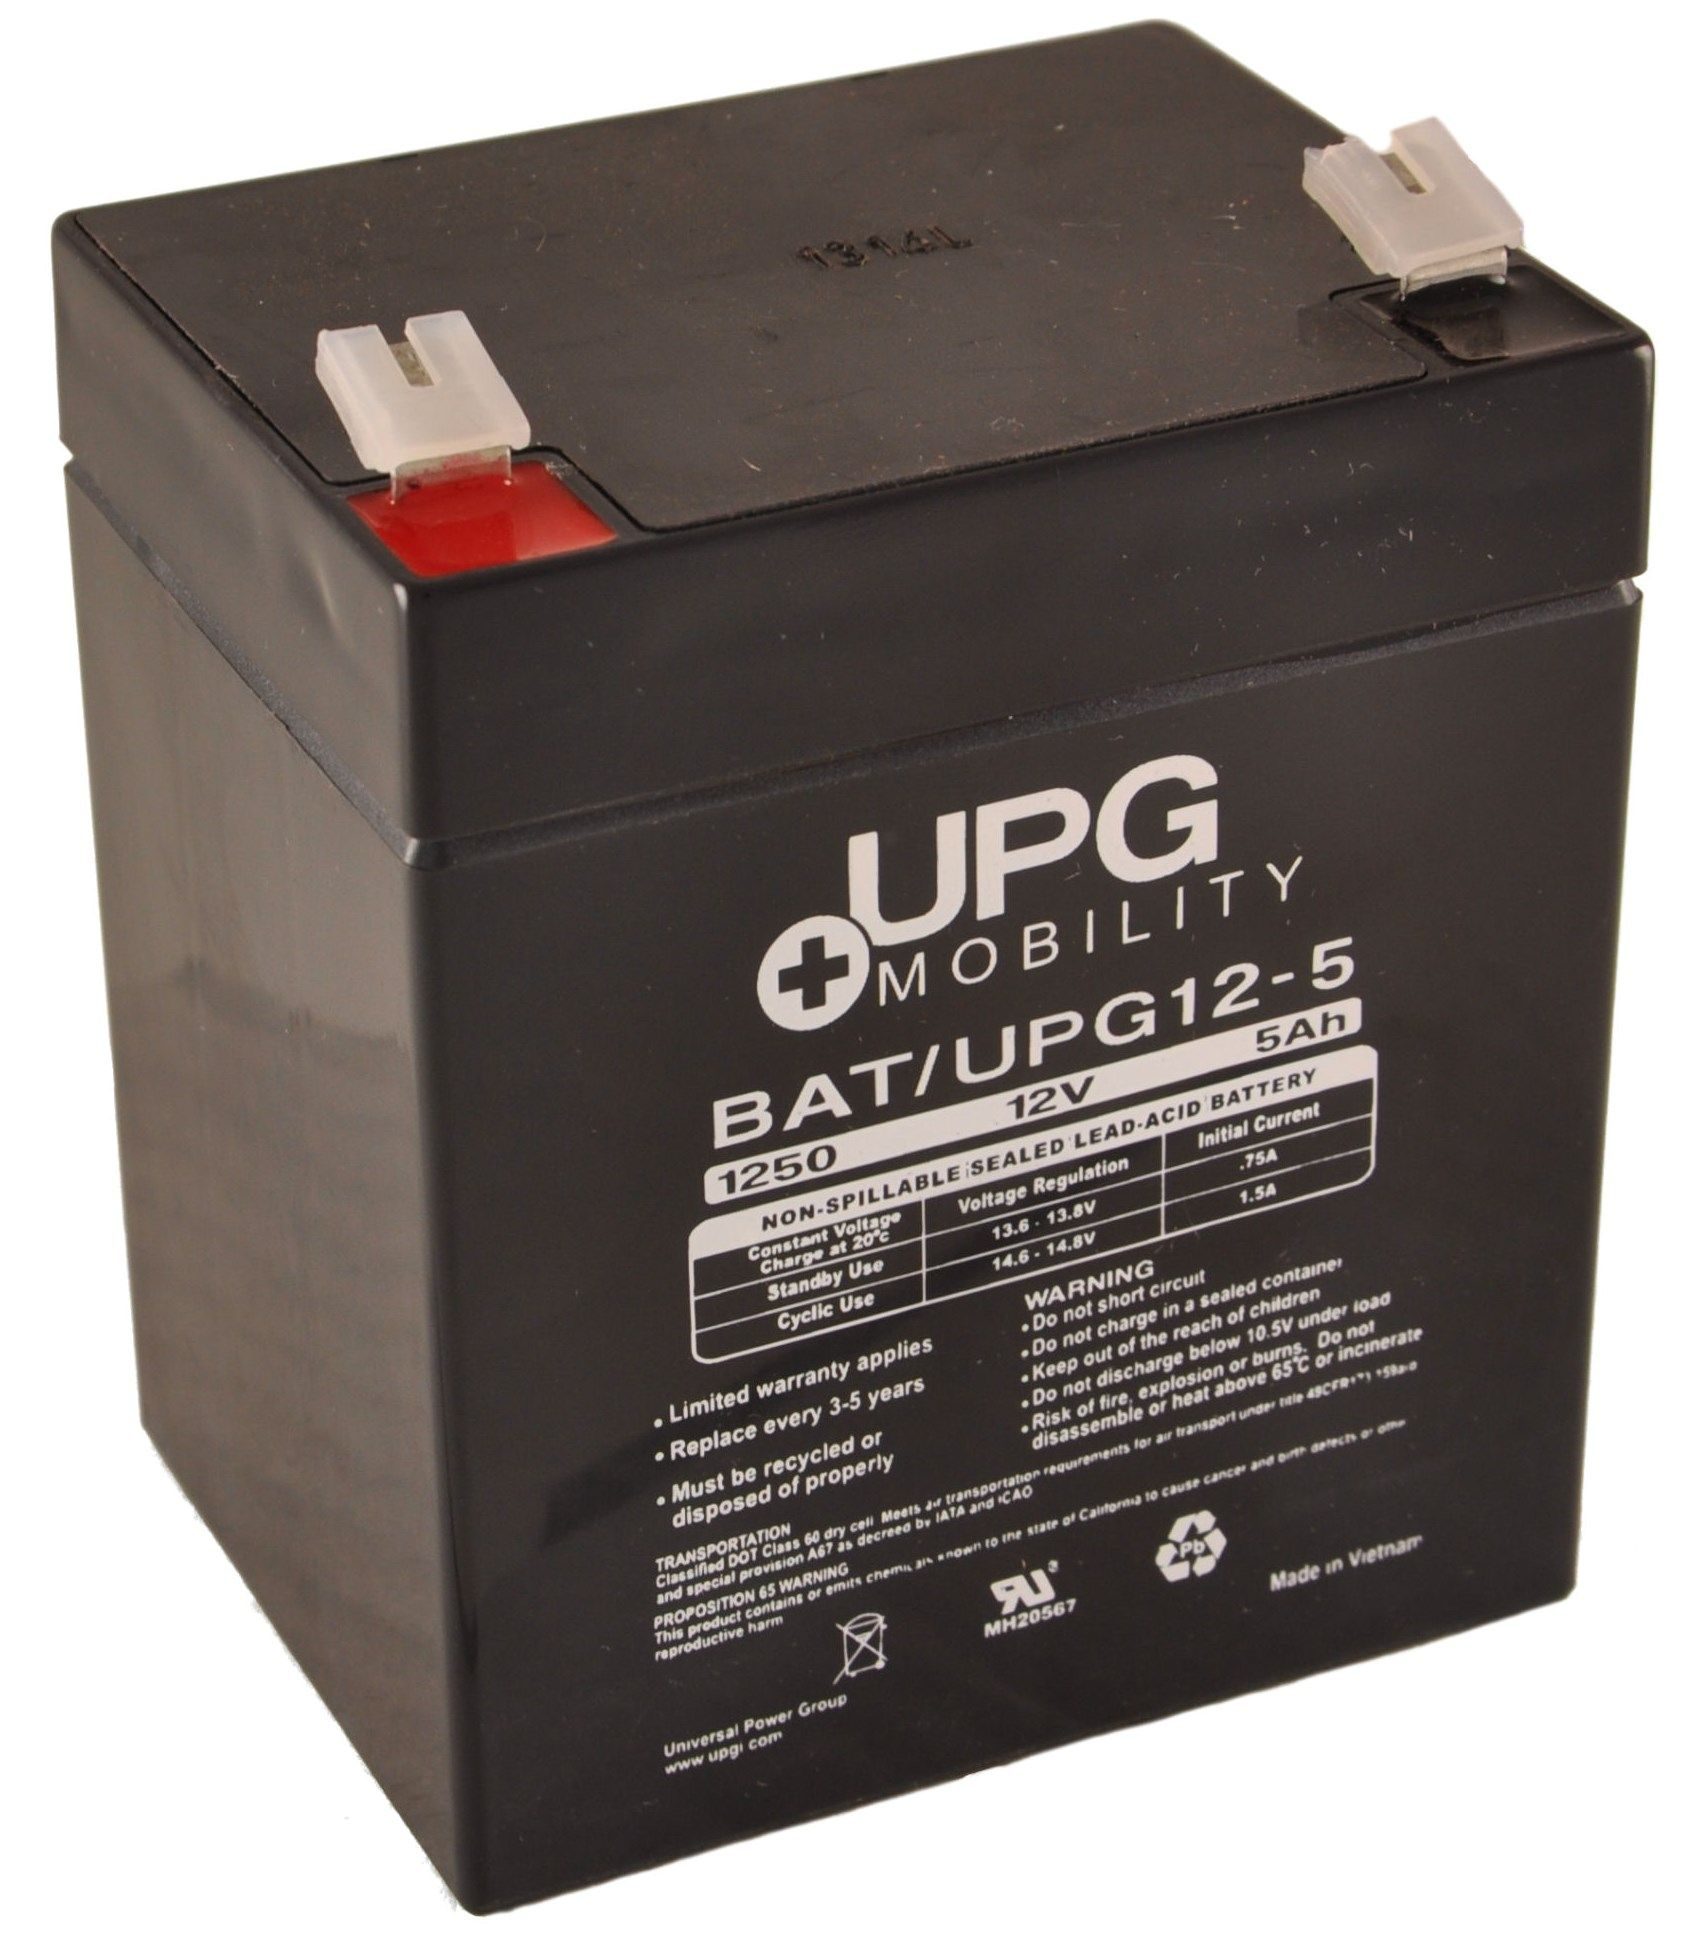 12V 5Ah UPG Sealed Lead Acid (AGM) Hoist & Lift Battery